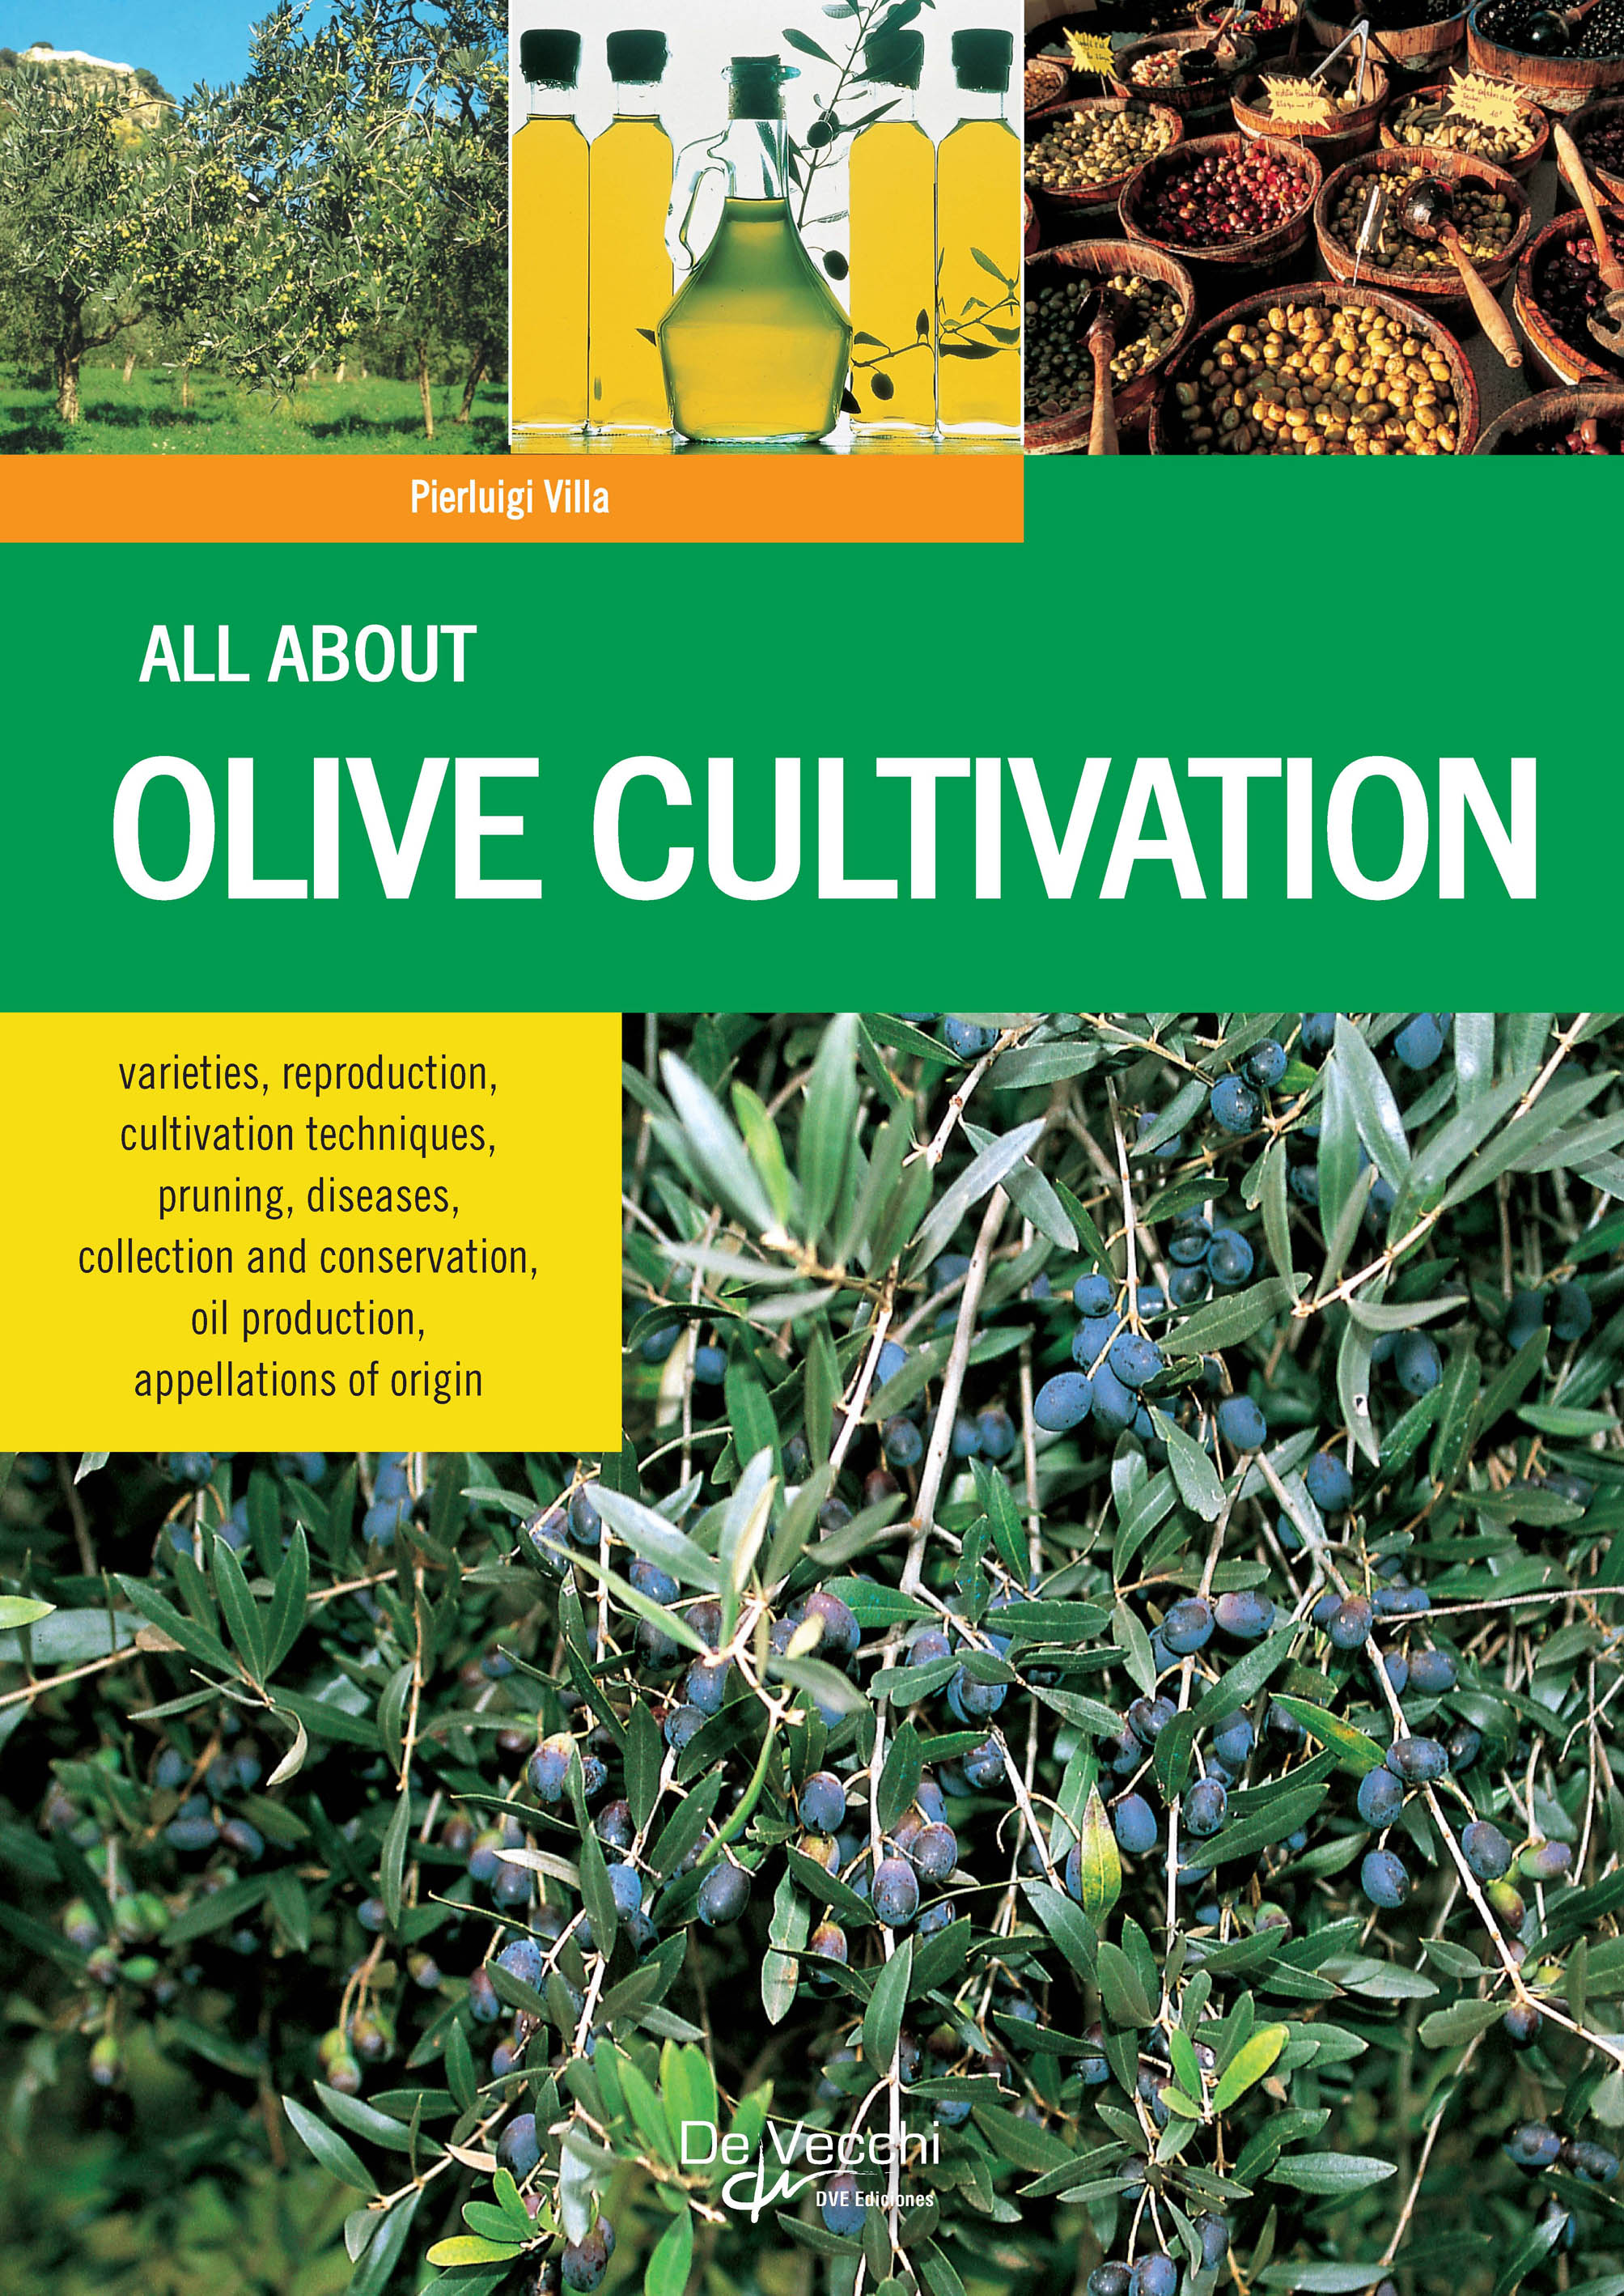 ALL ABOUT OLIVE CULTIVATION